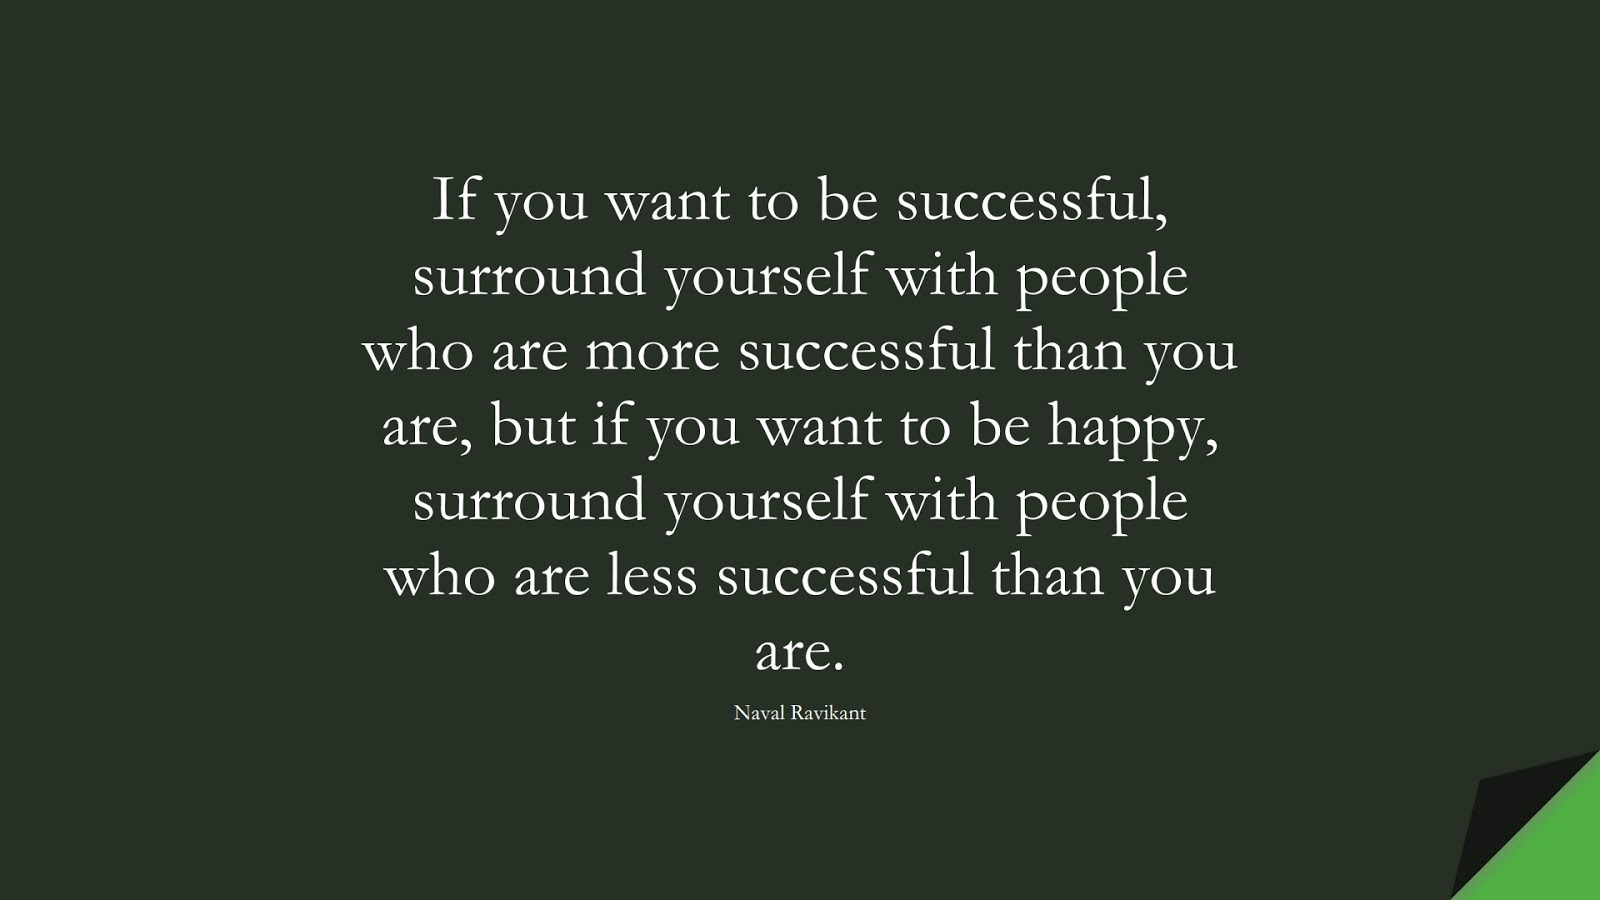 If you want to be successful, surround yourself with people who are more successful than you are, but if you want to be happy, surround yourself with people who are less successful than you are. (Naval Ravikant);  #SuccessQuotes